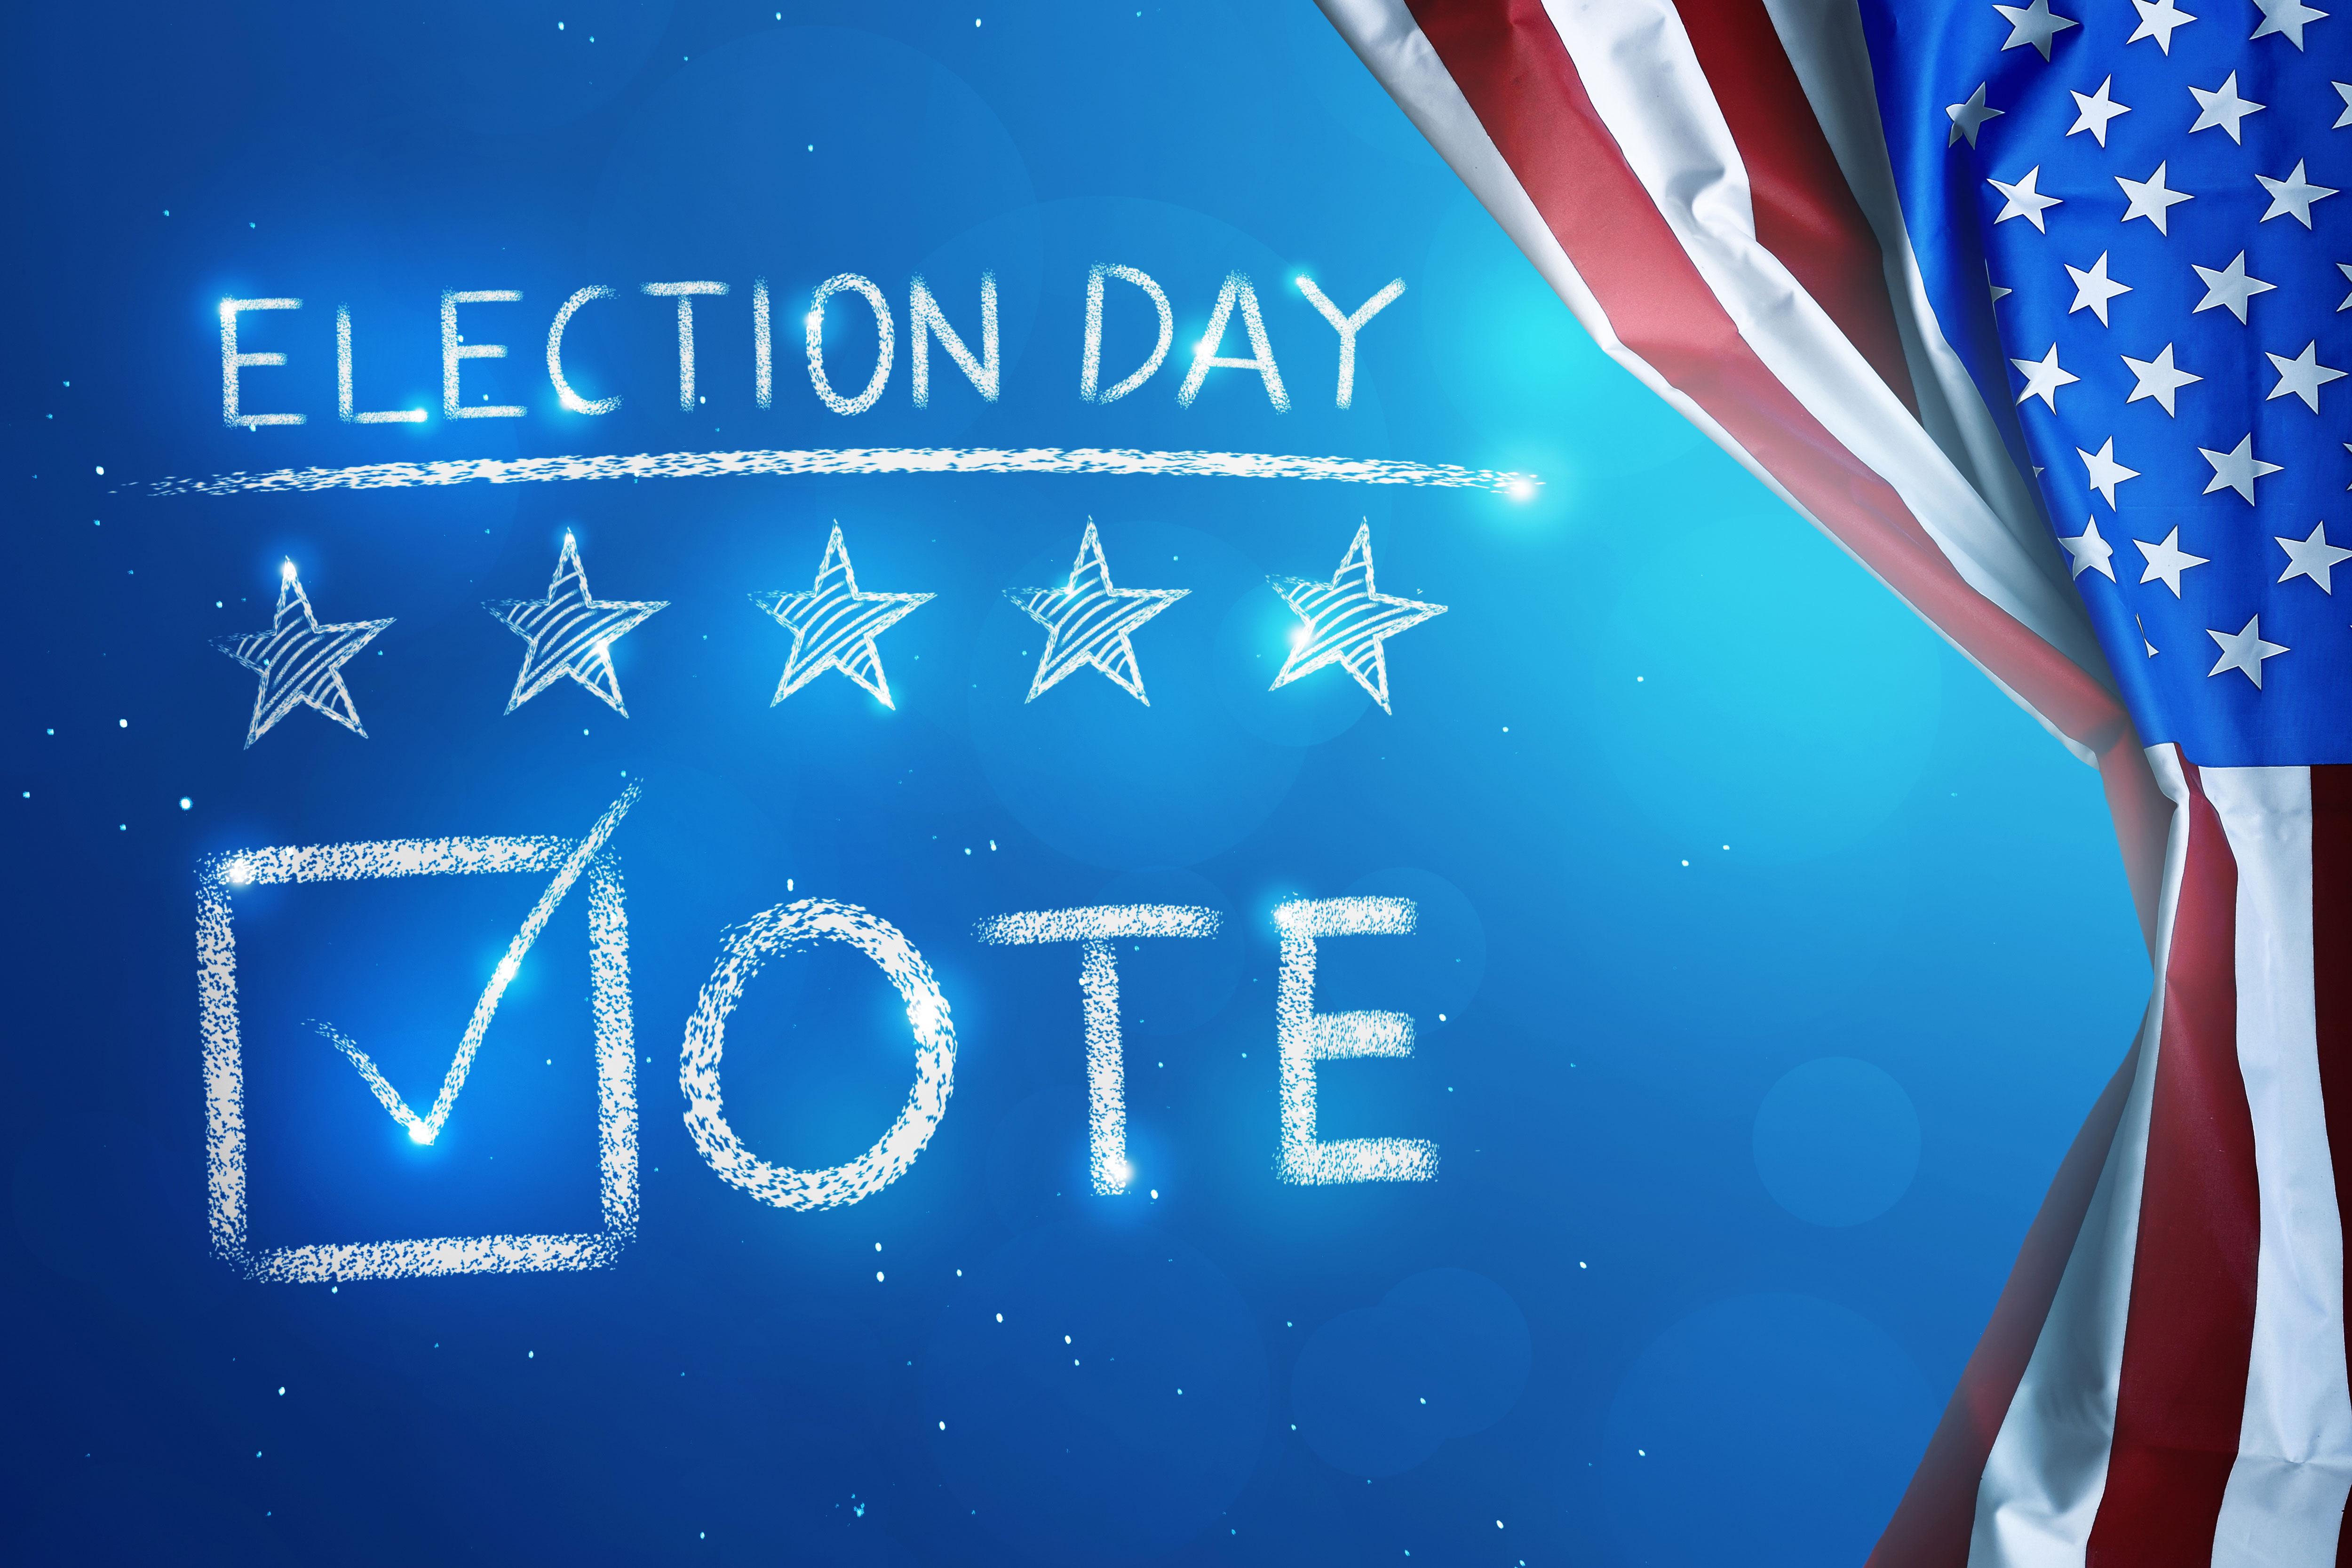 election day - photo #8